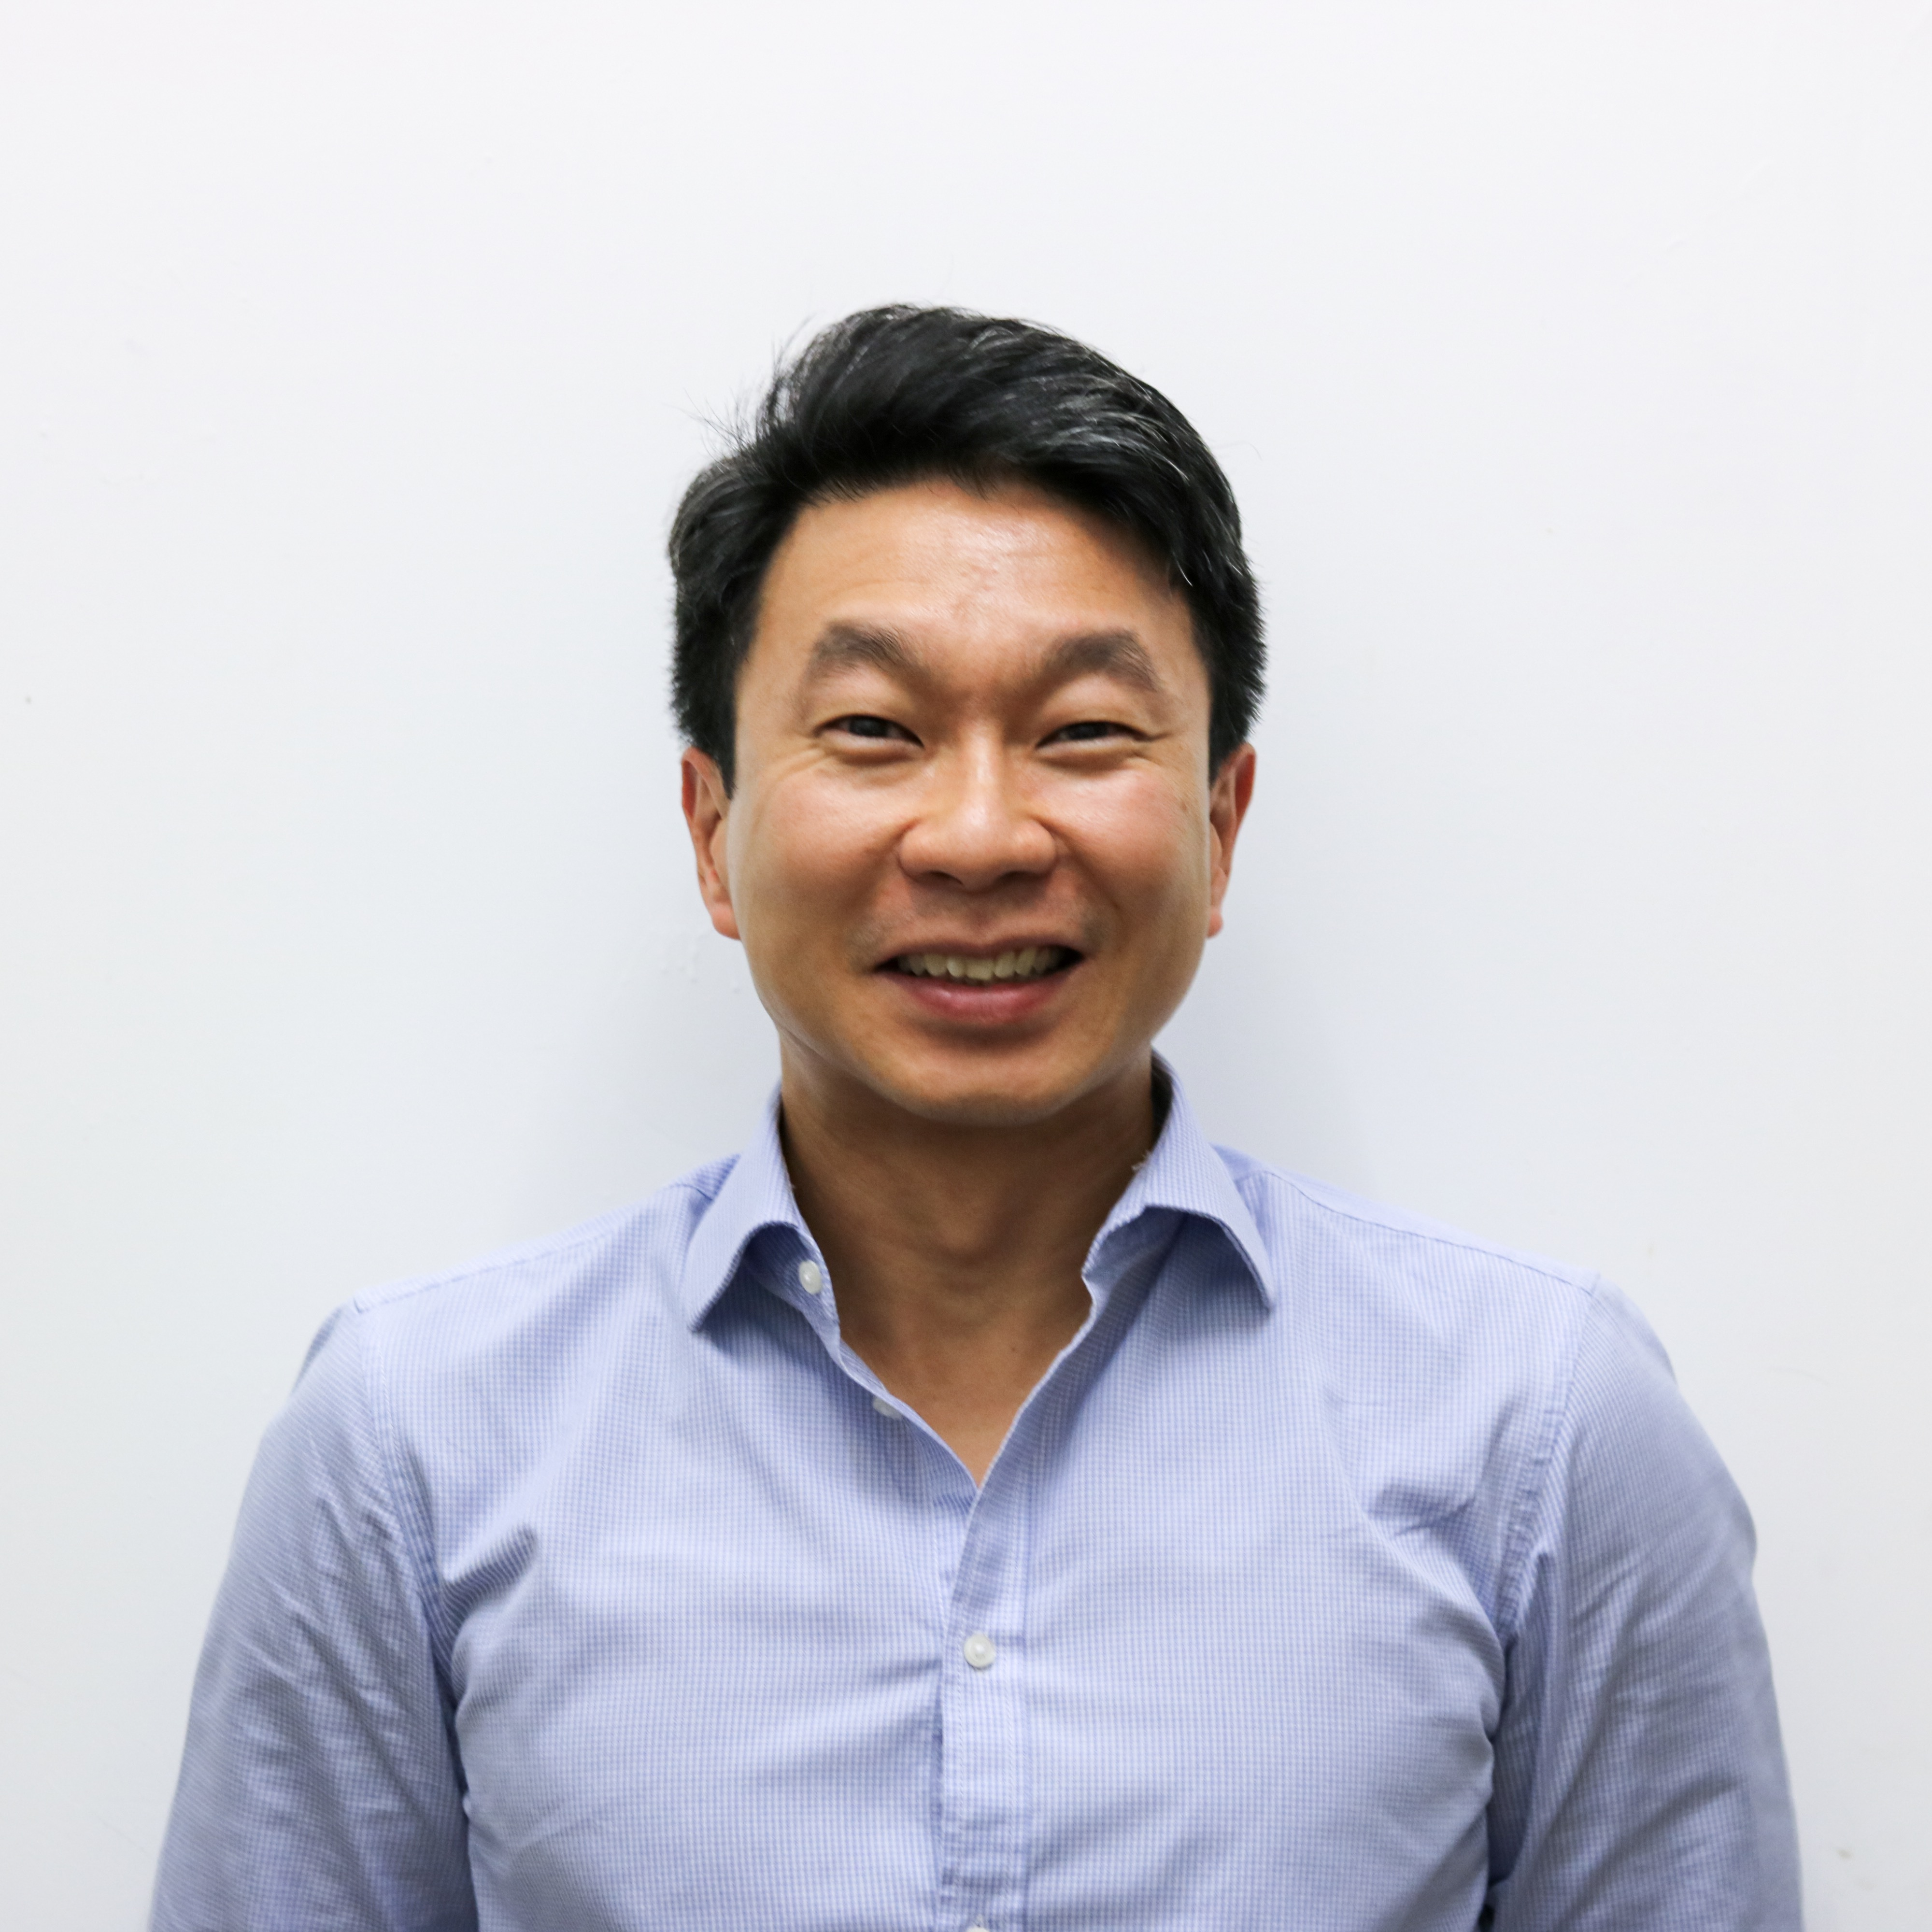 gini General Manager Fung Lim